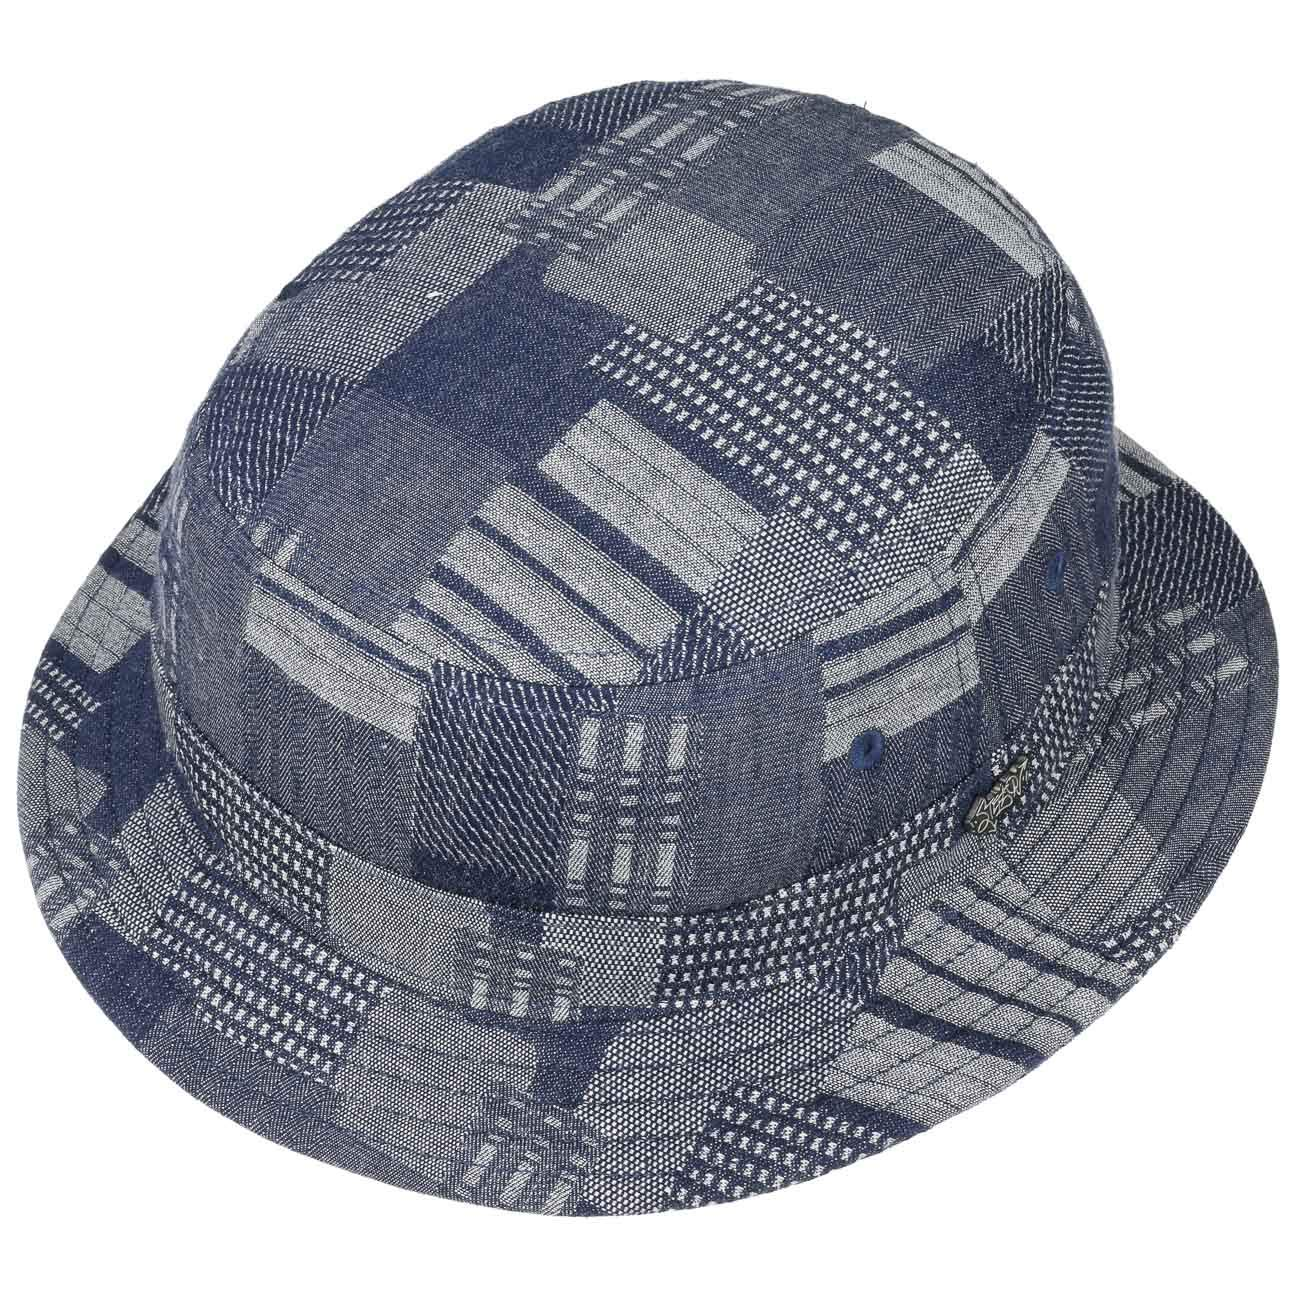 cd21ca8bcb3660 Stetson Denim Patchwork Bucket Hat Sun: Amazon.co.uk: Clothing